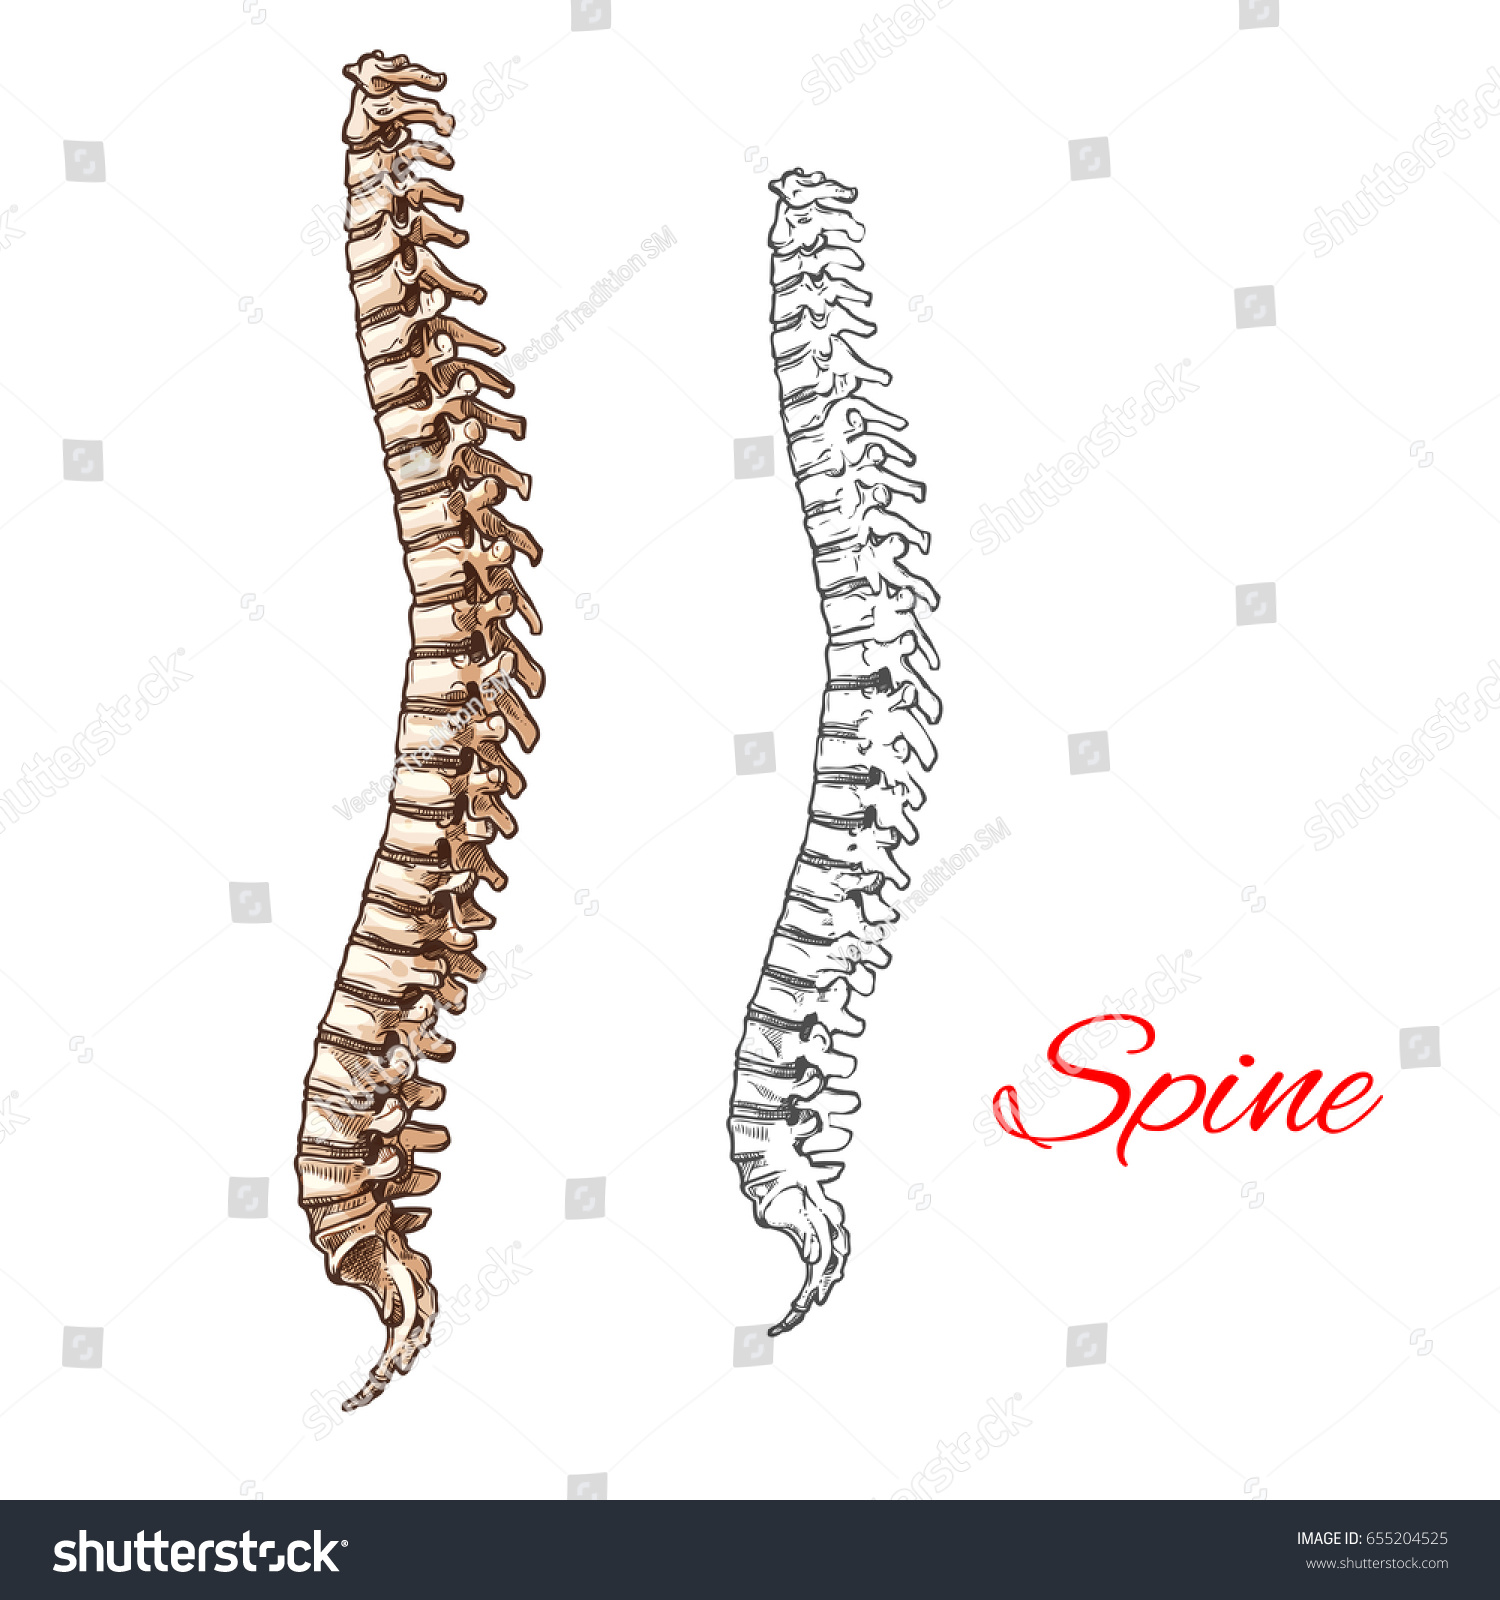 Human Spine Bones Backbone Joints Vector Stock Vector Royalty Free